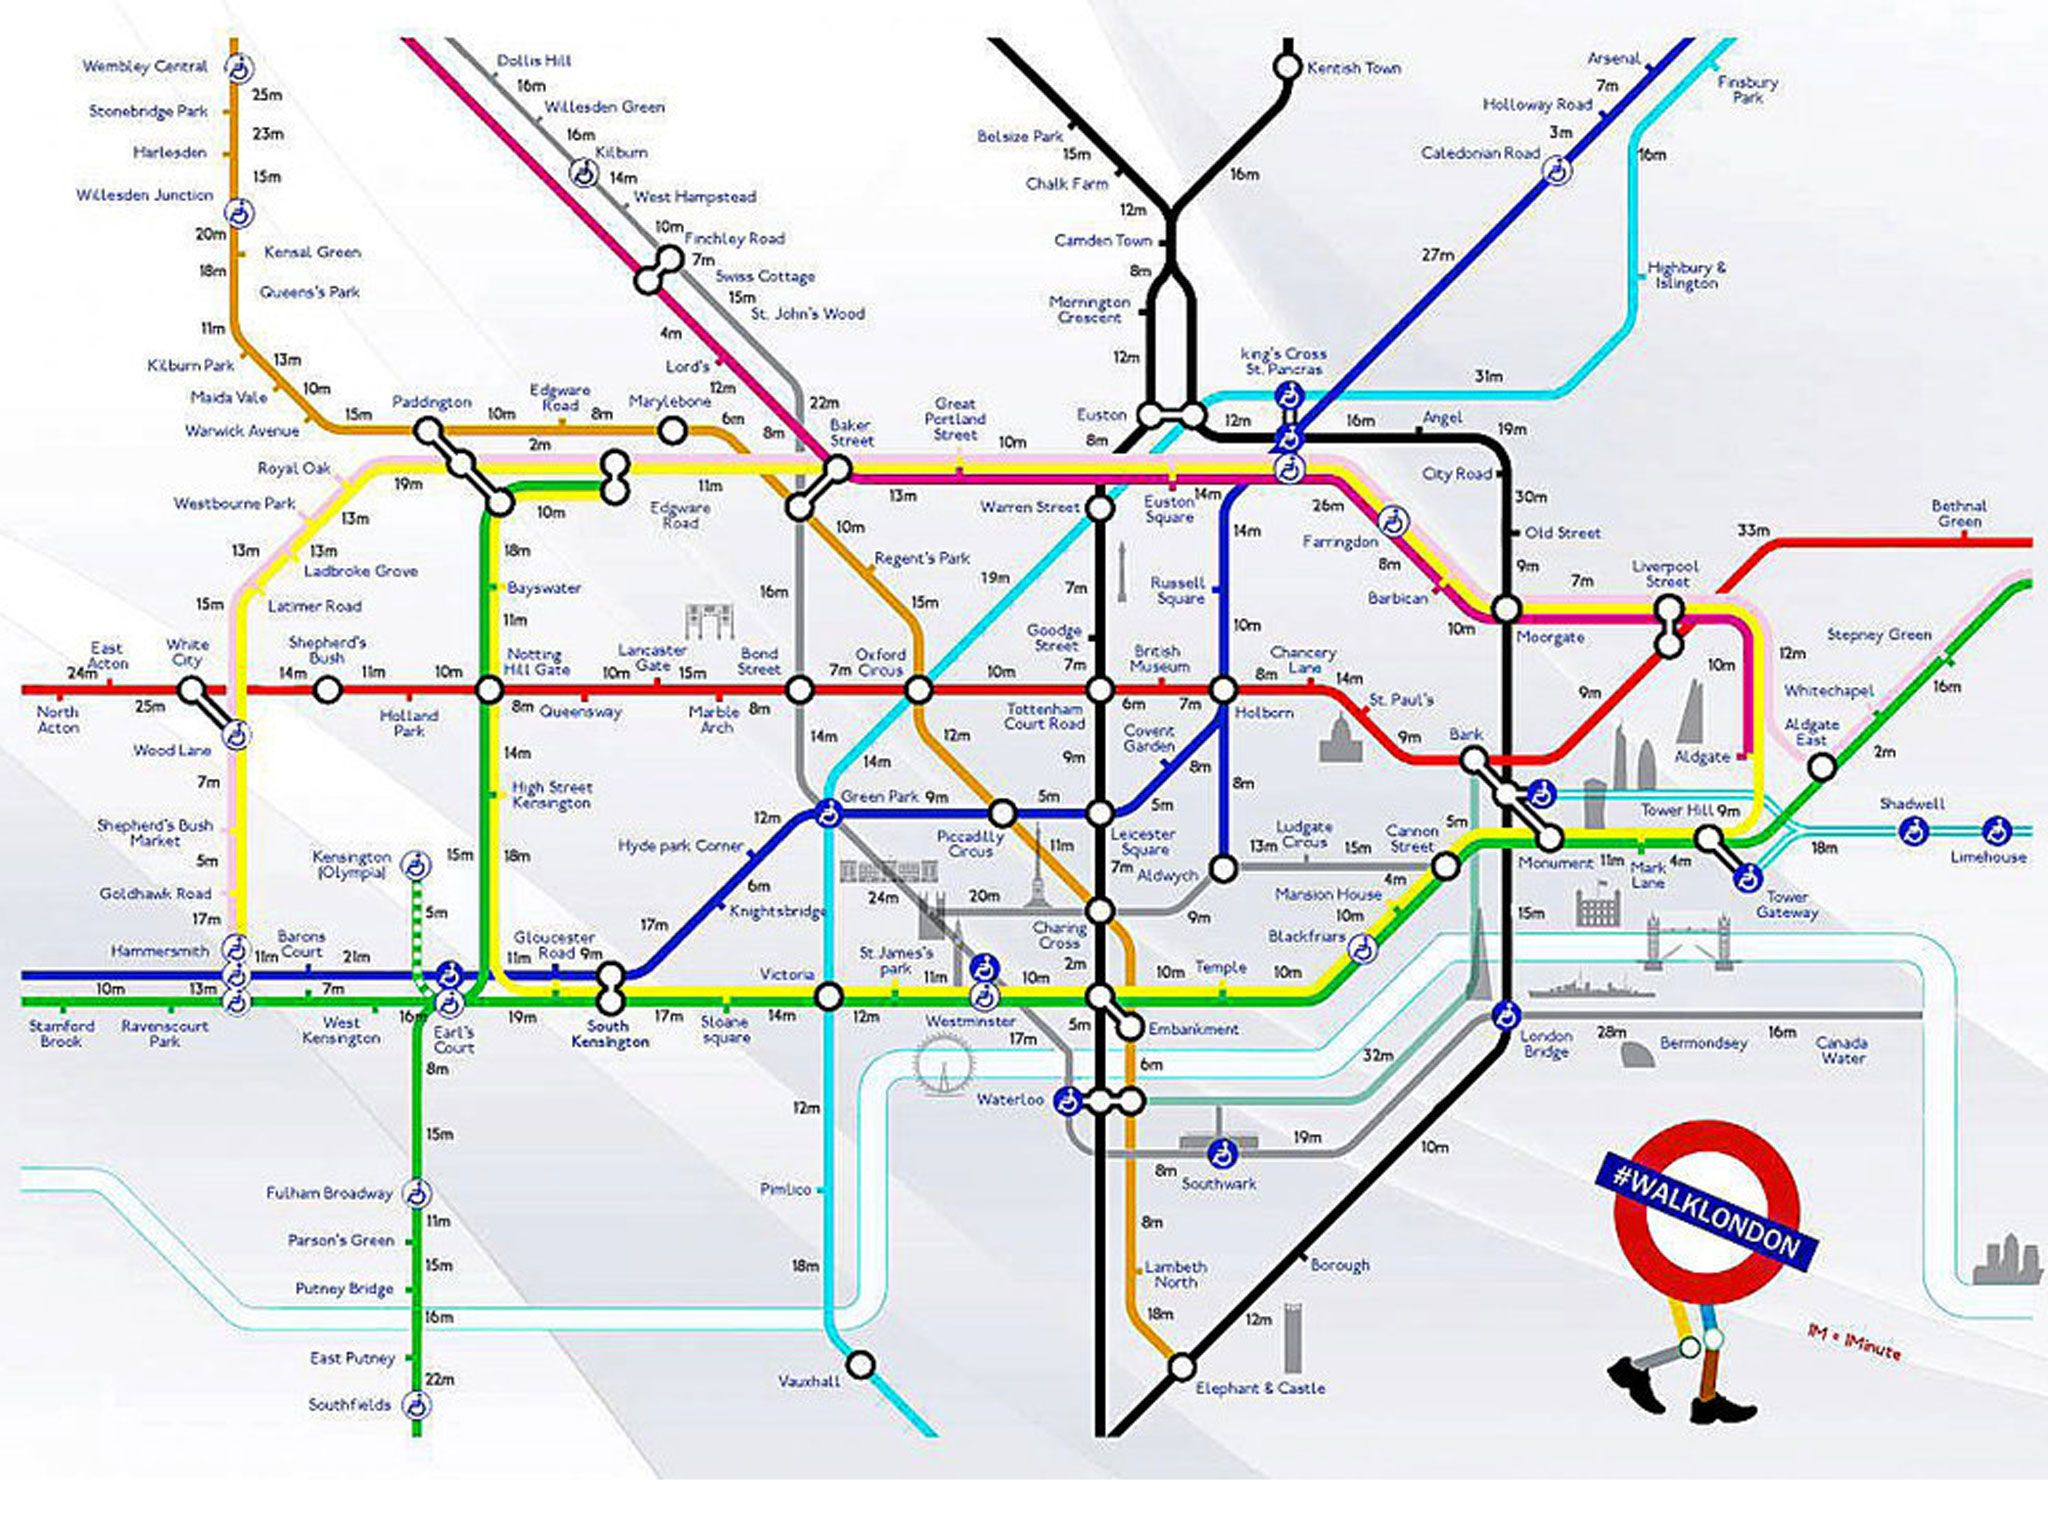 tube strike walking map avoid underground chaos with this useful guide to overground routes between stations